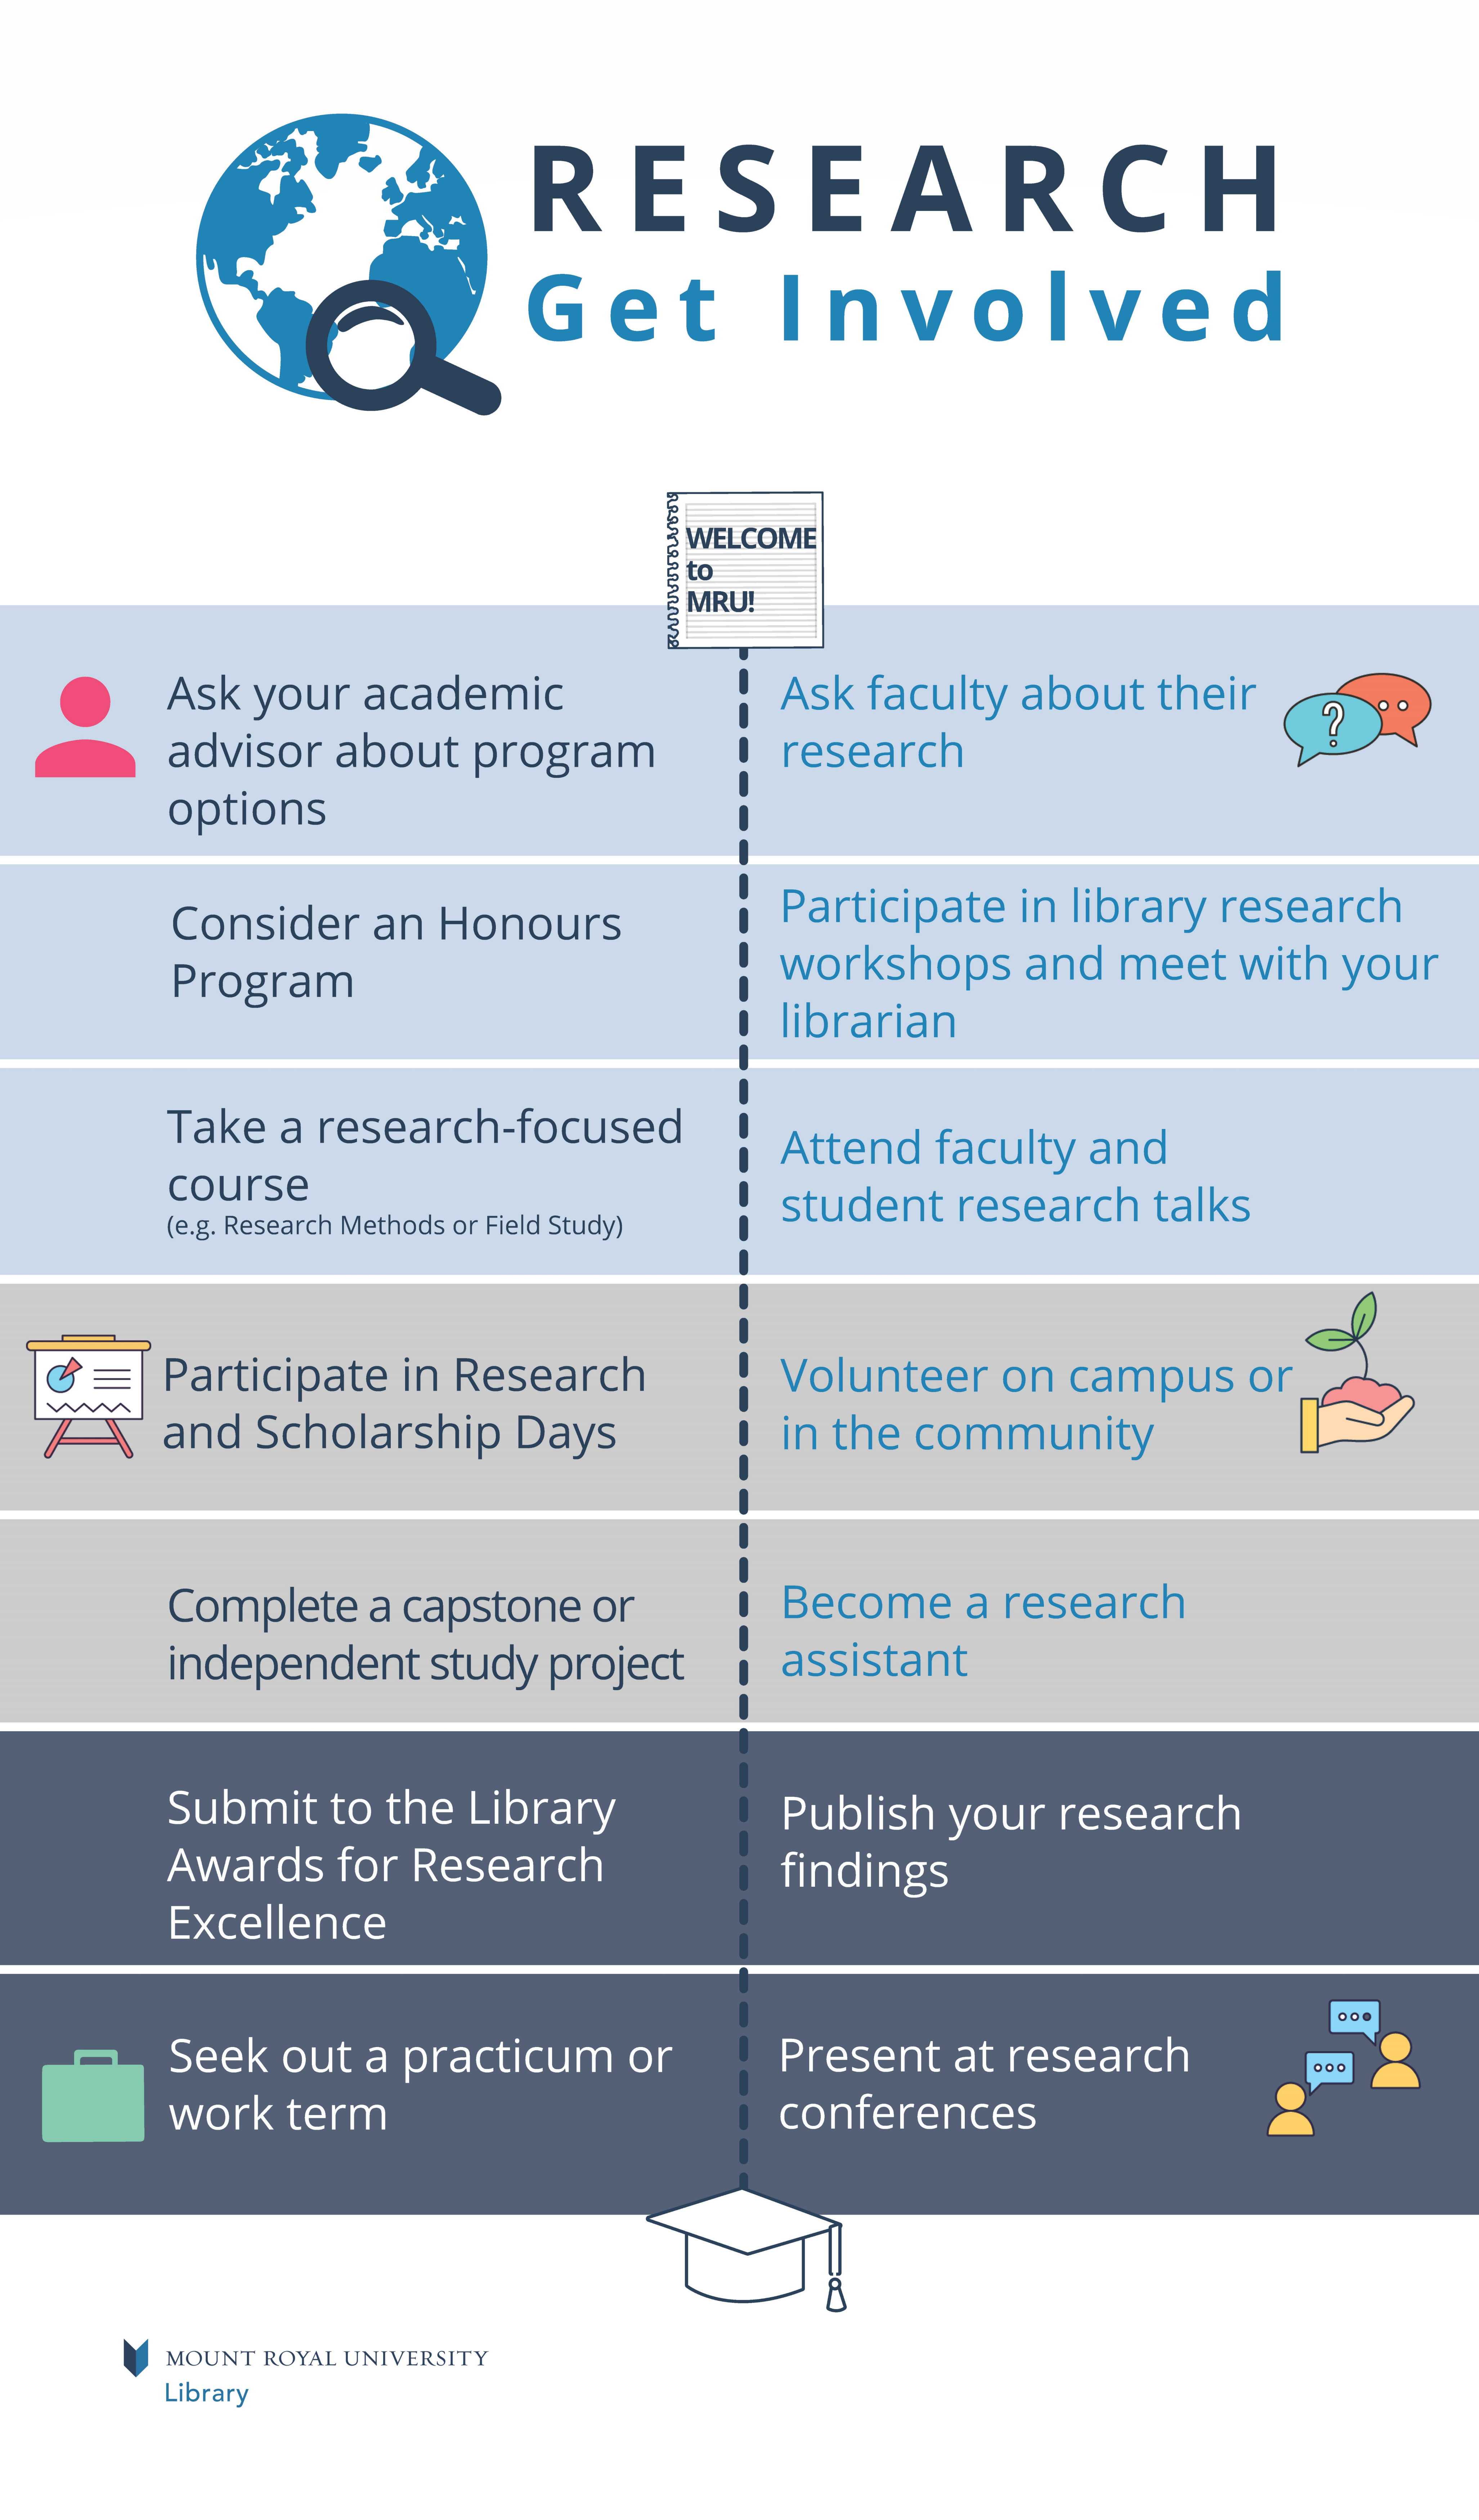 Image outlining different research related activit